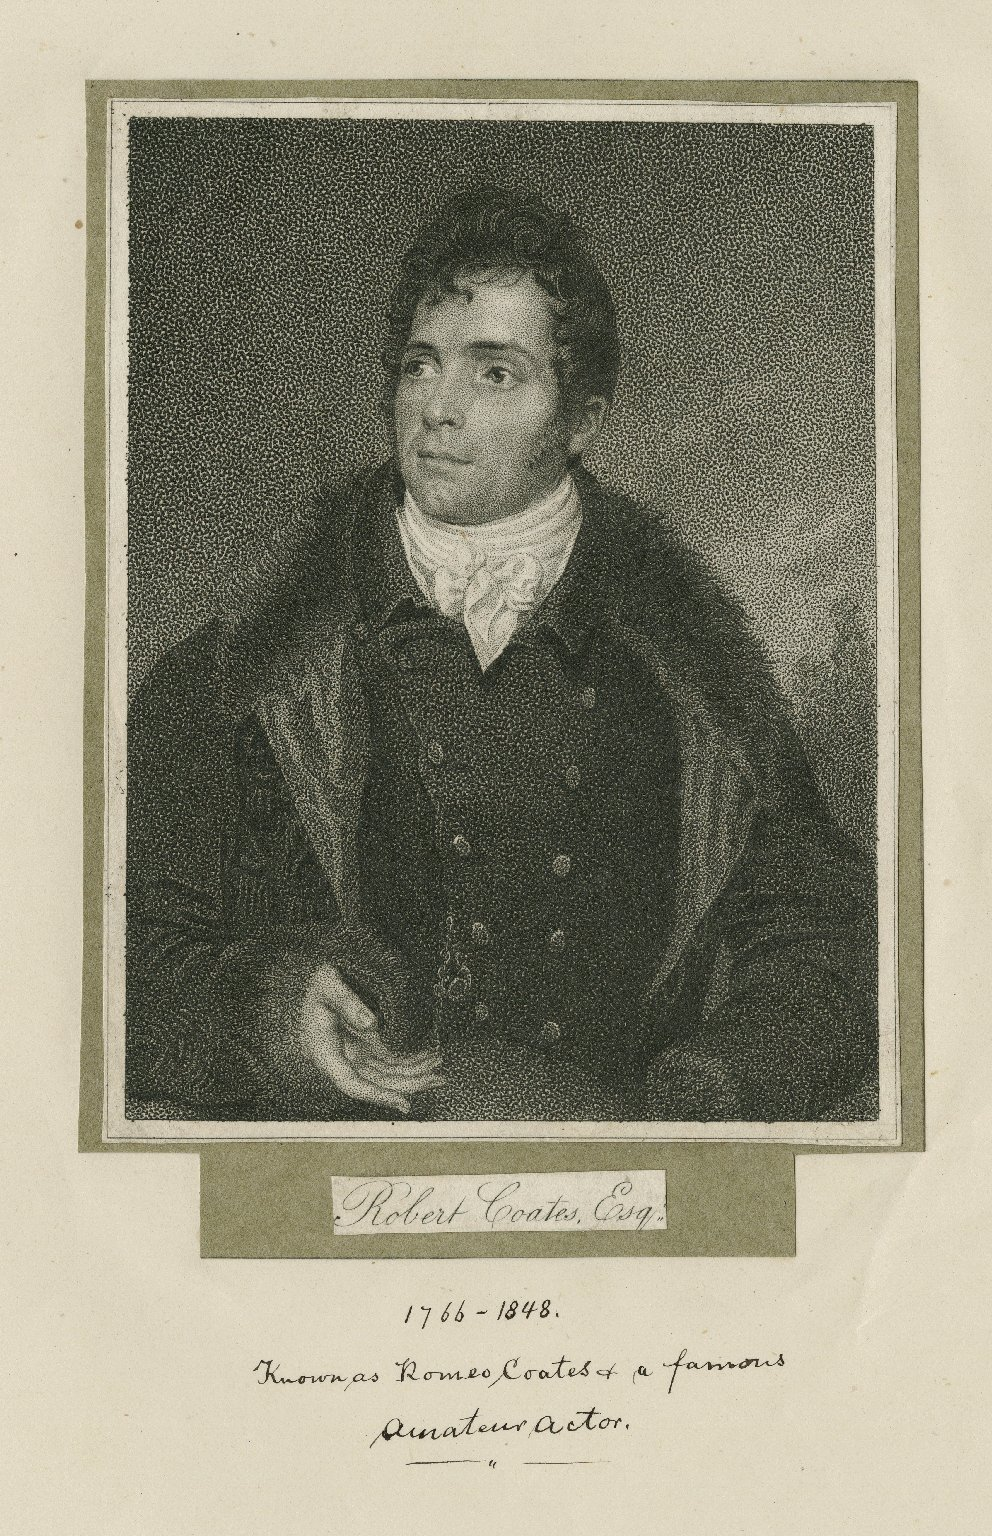 """Illustrated portrait of Robert """"Romeo"""" Coates shown in a fur coat; caption """"known as Romeo Coates a famous amateur actor"""""""